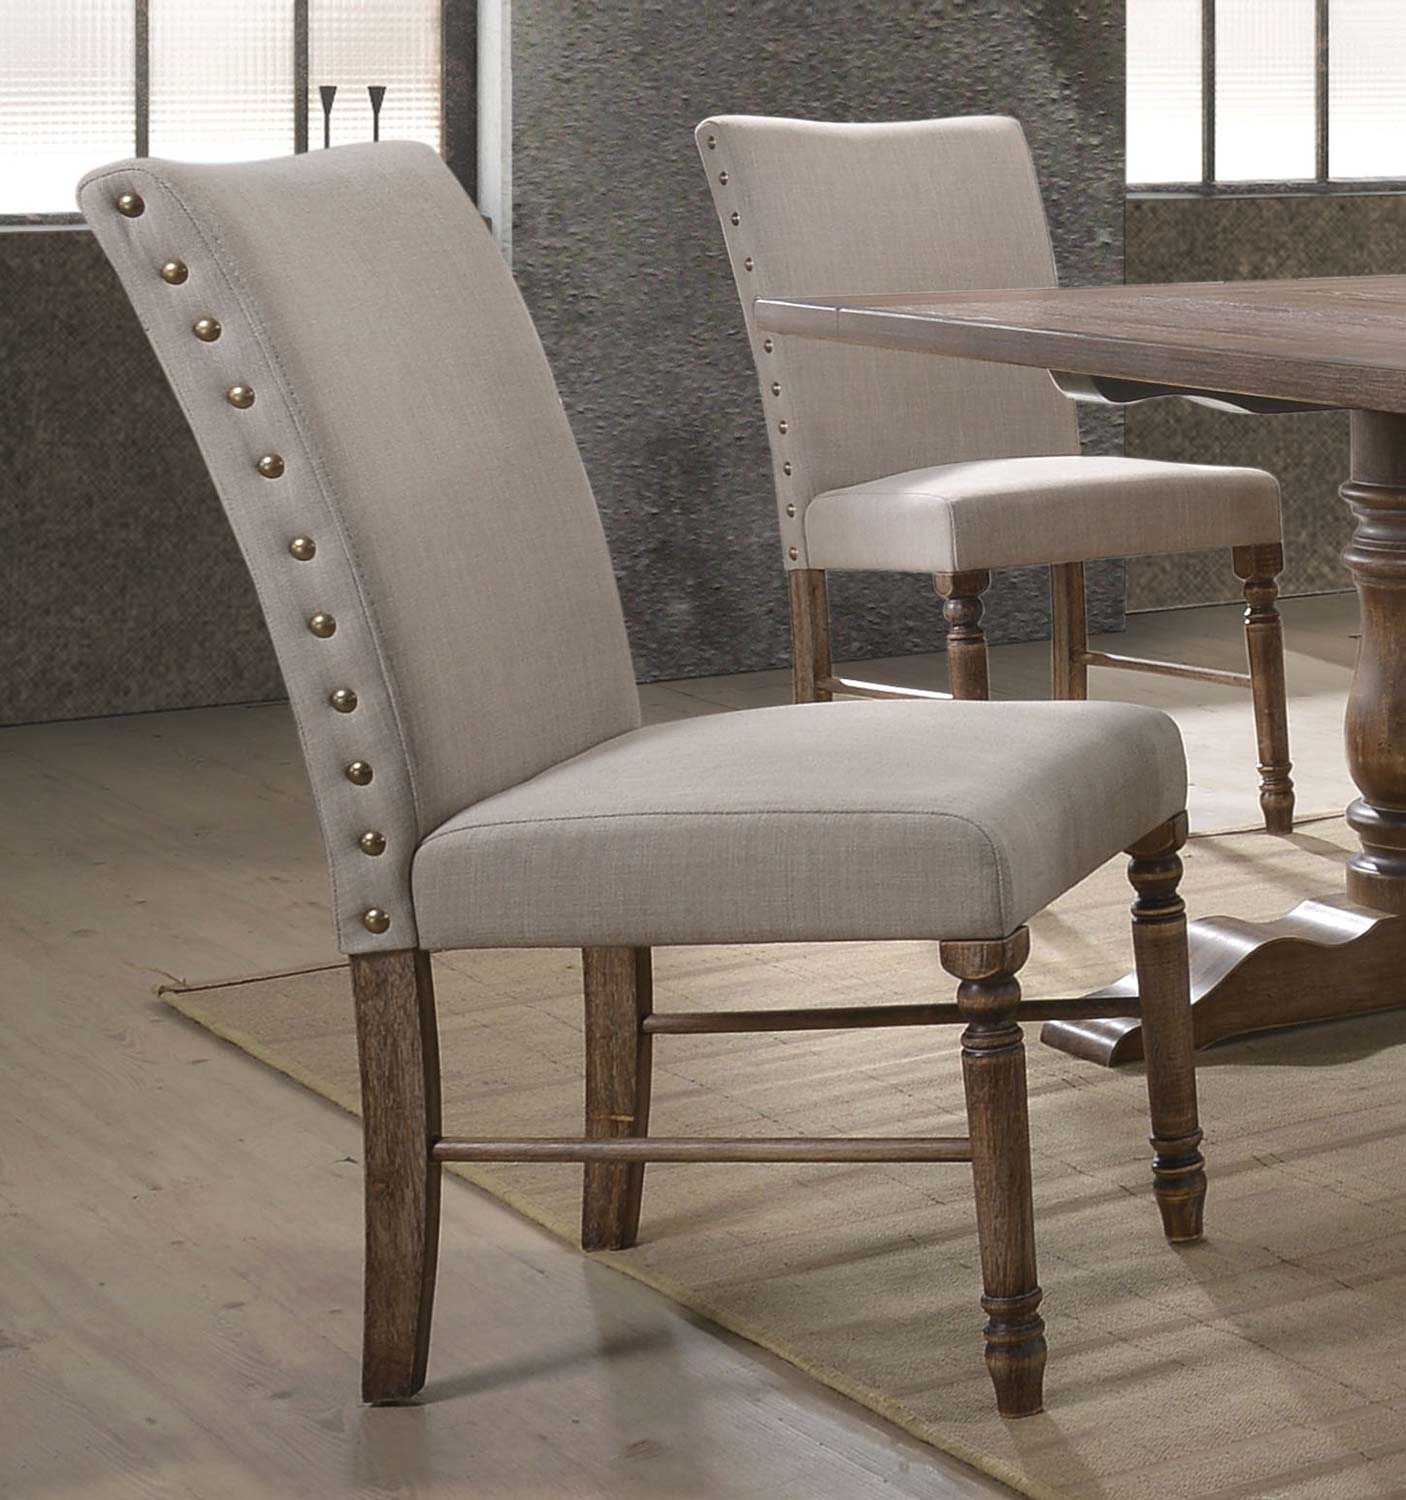 Acme Leventis Side Chair - Cream Fabric/Weathered Oak